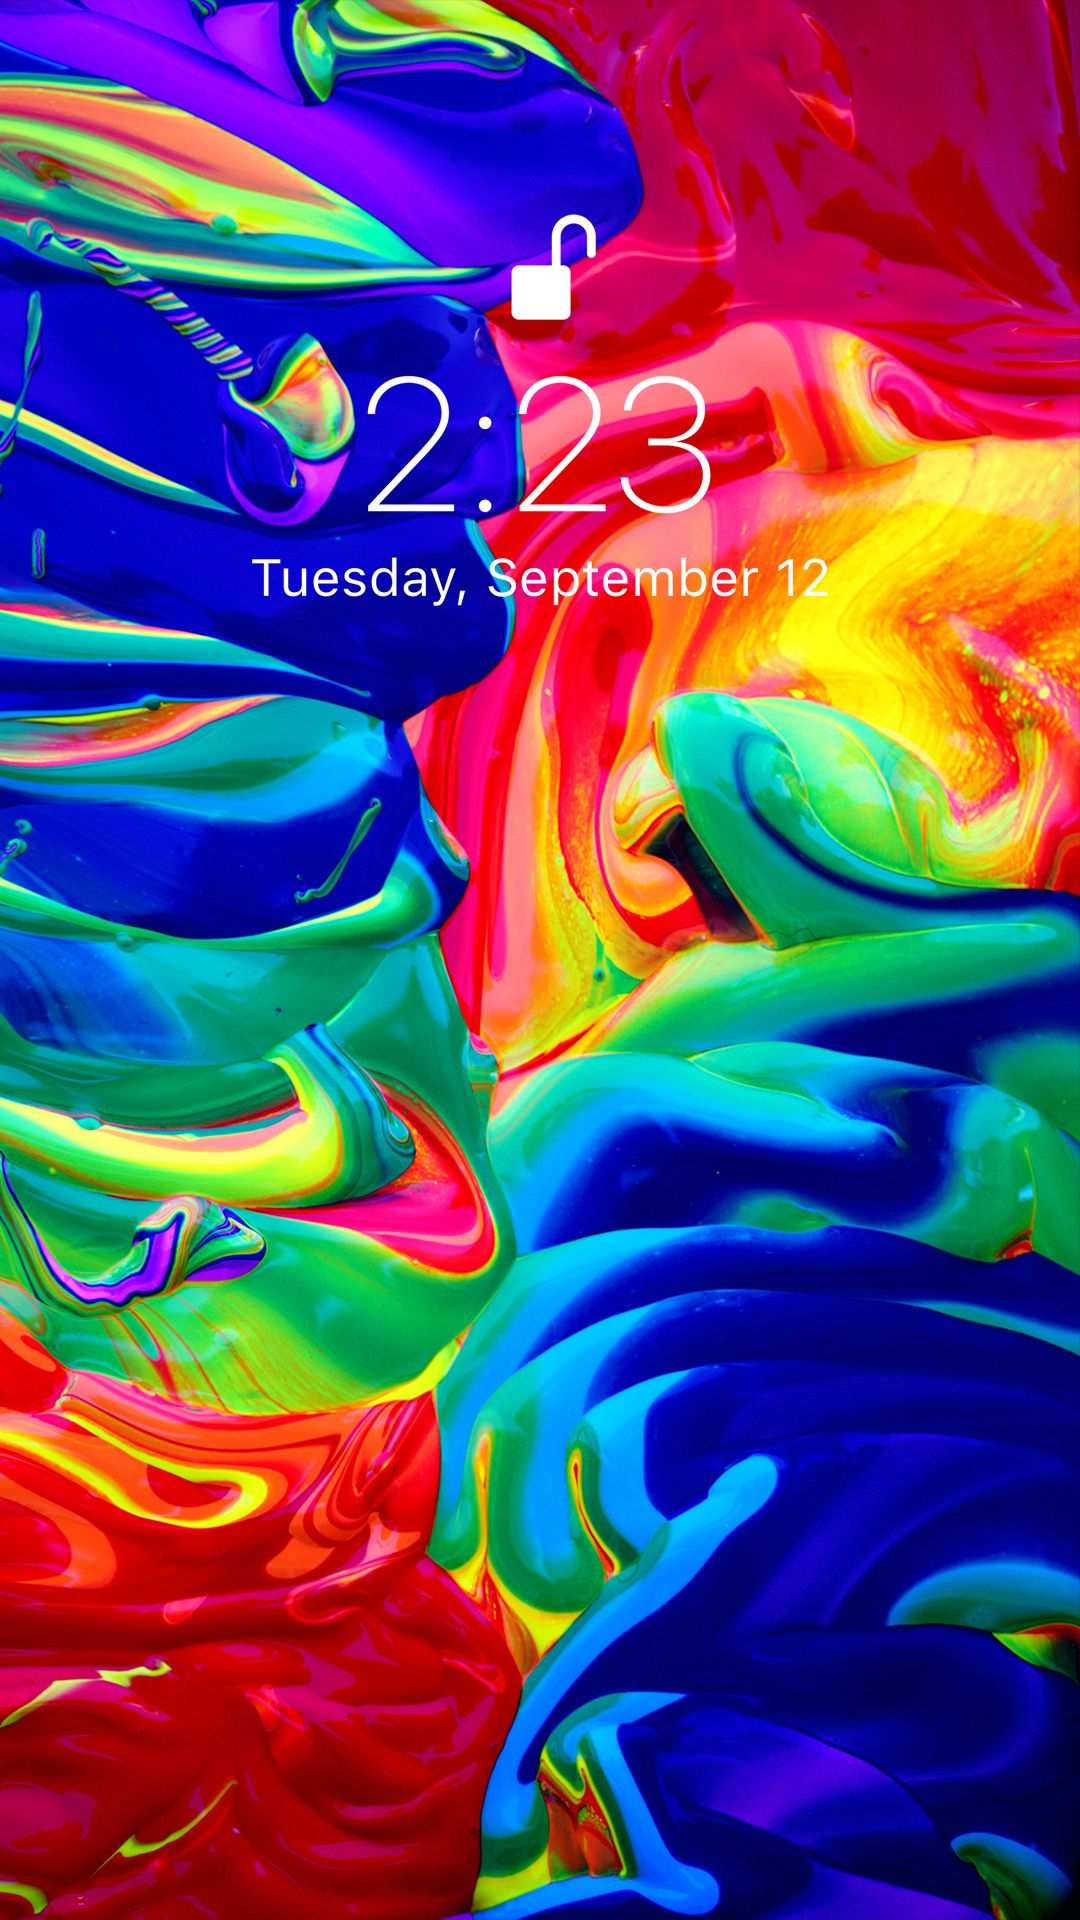 Colorful wallpaper for your iPhone XS from Vibe app